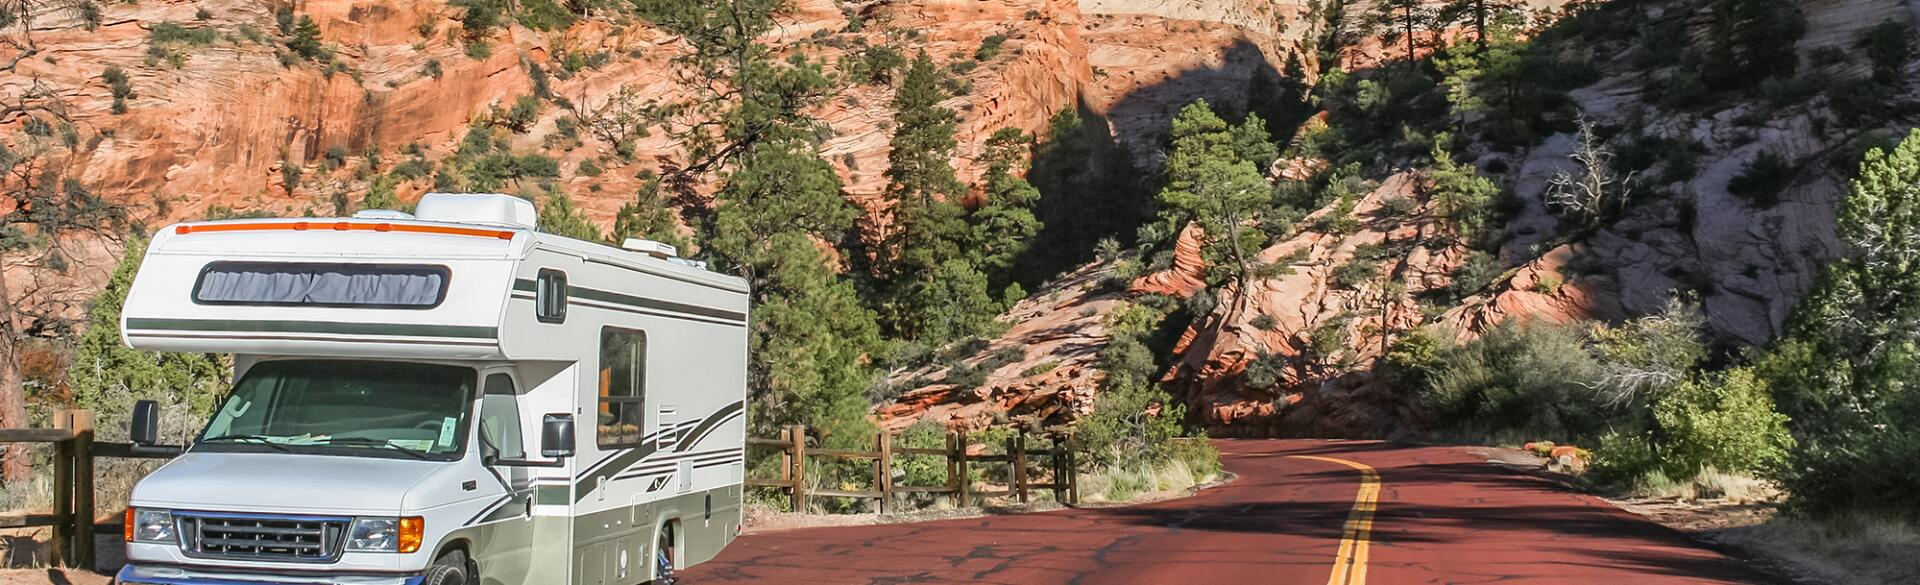 Motorhome along a road through Zion National Park, USA